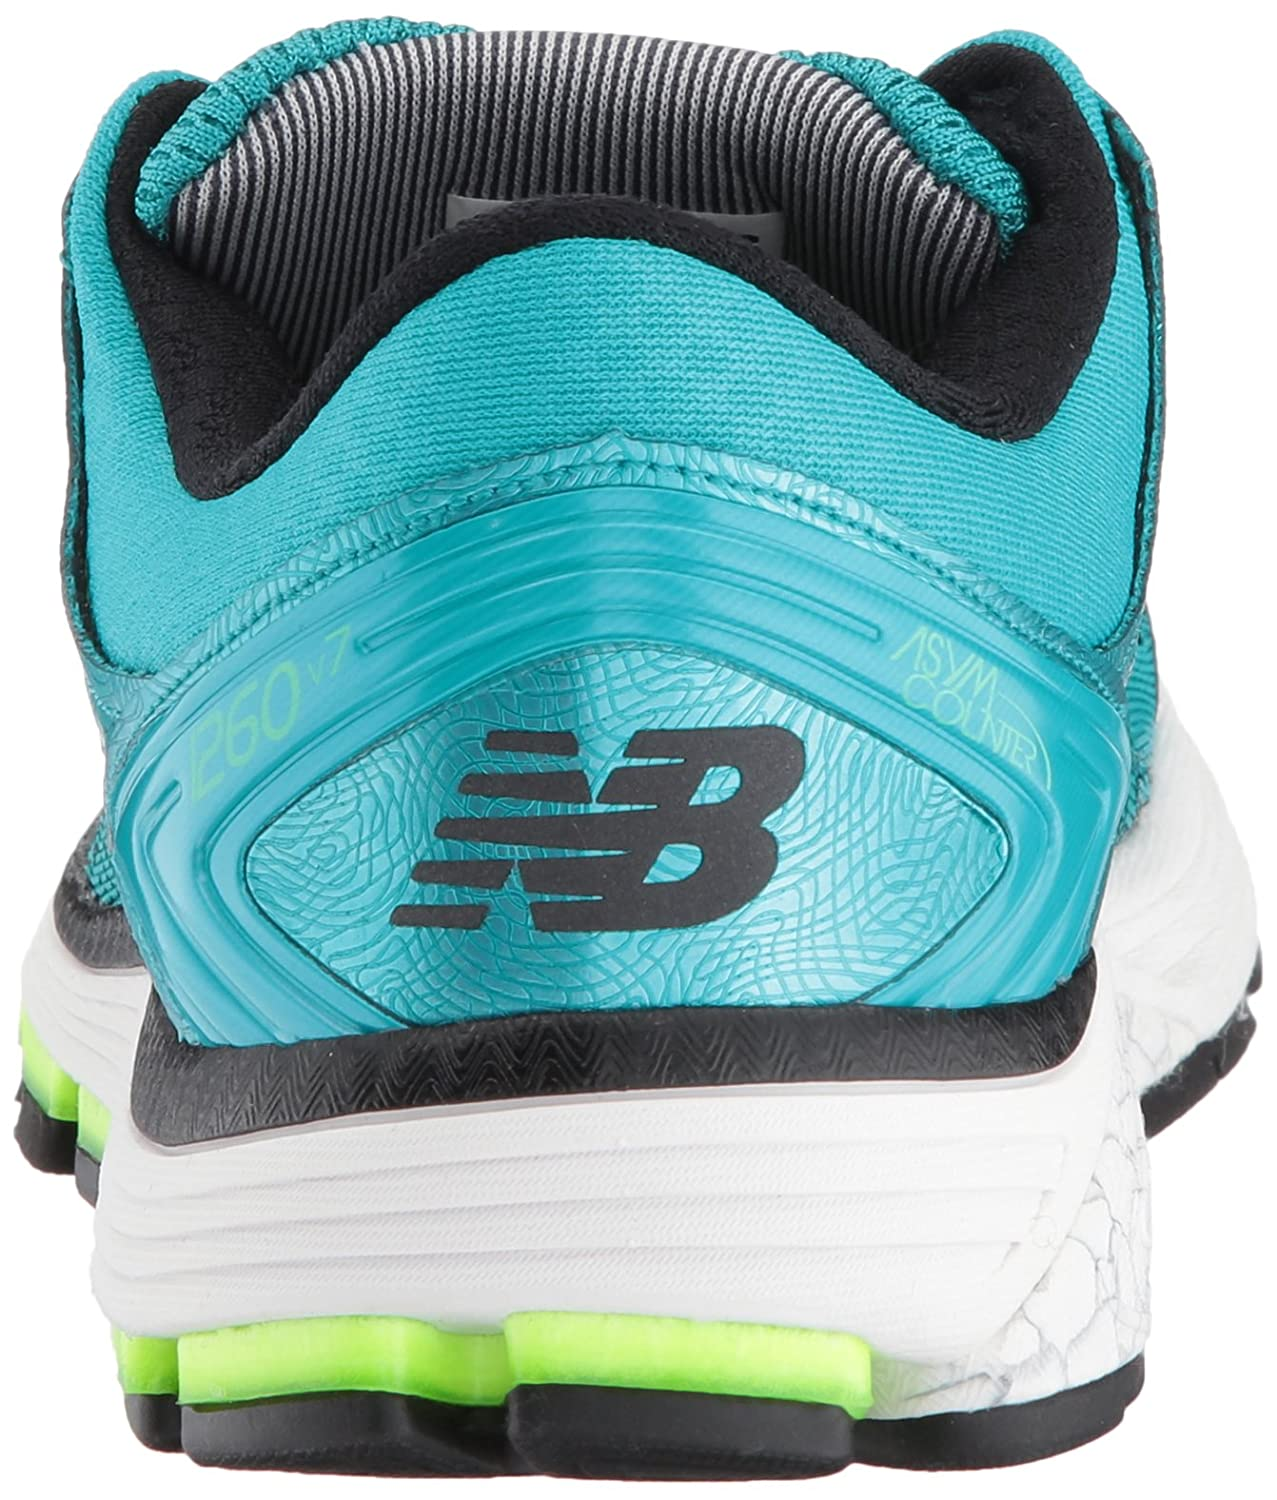 New Balance Women's 1260v7 Running Shoe B01N1I07X3 13 B(M) US|Pisces Blue/Lime Glo